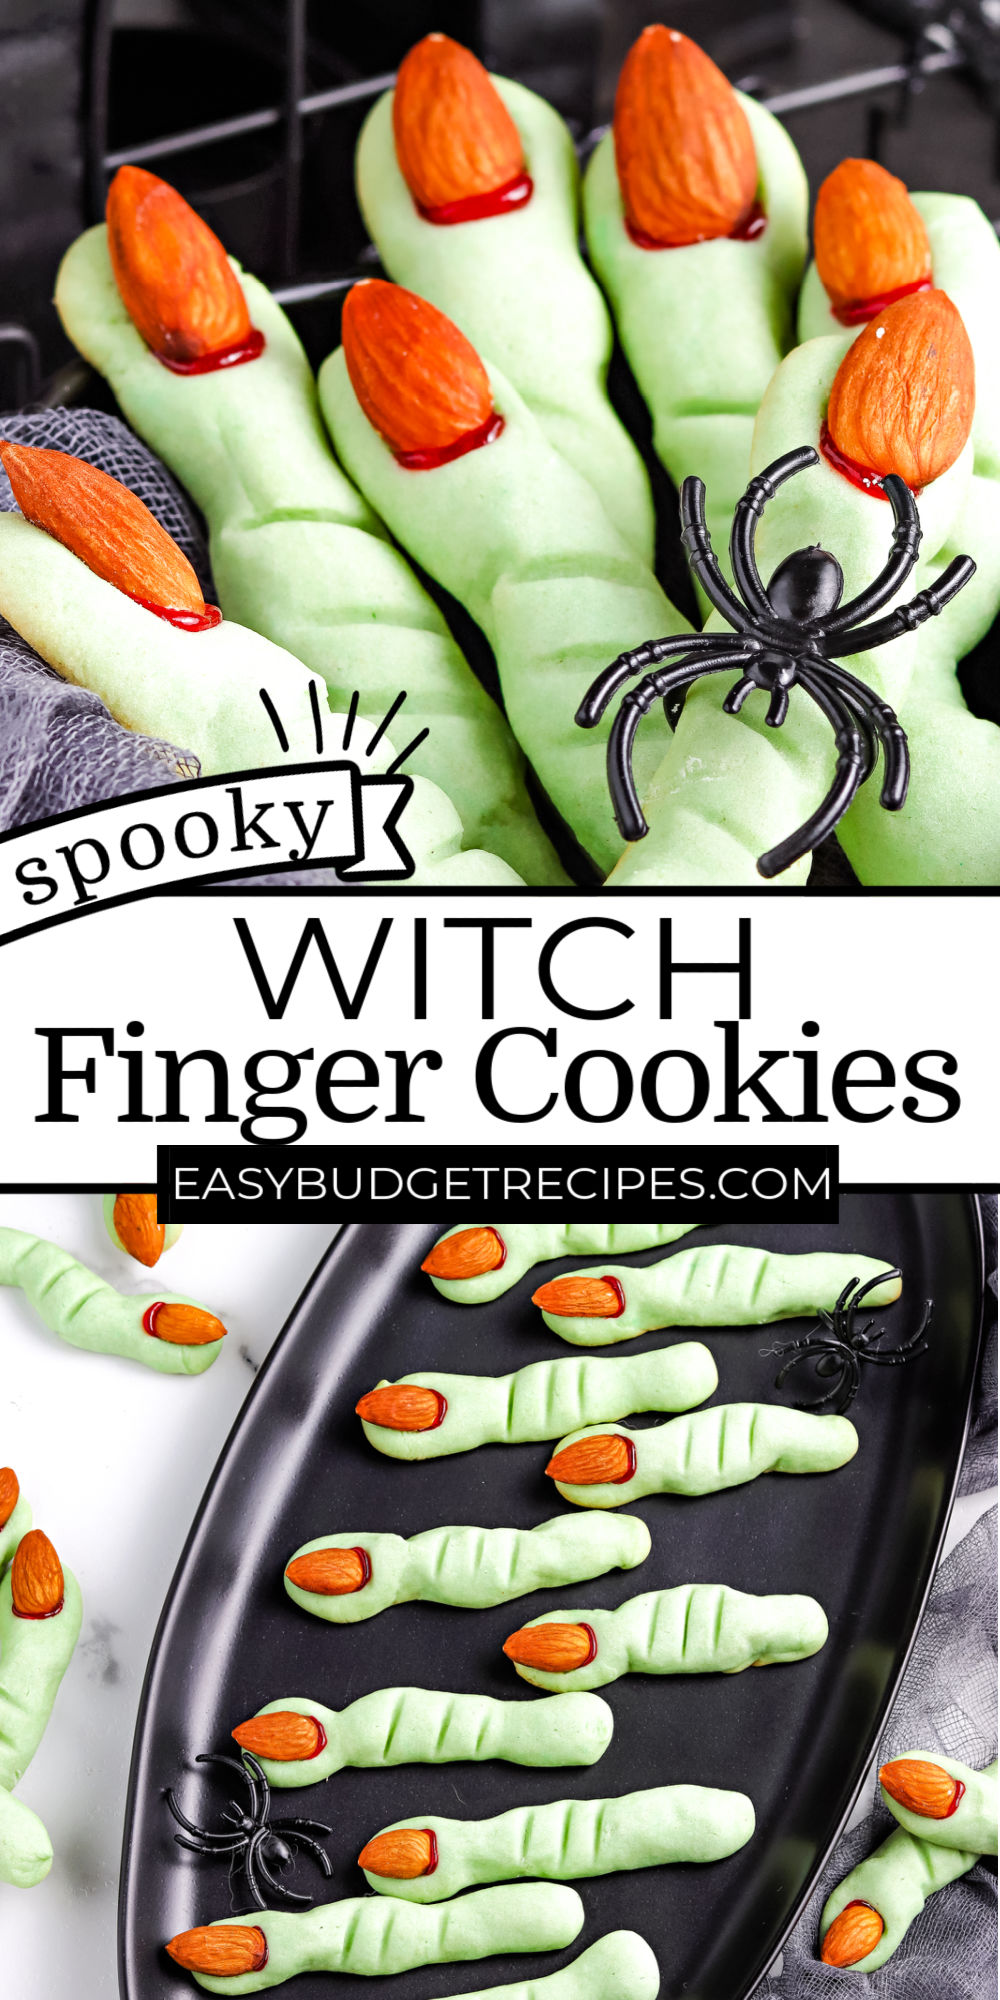 These Witch Finger Cookies are just as fun to make as they are to eat! Grab the kids because they will love helping you make these Halloween cookies! via @easybudgetrecipes